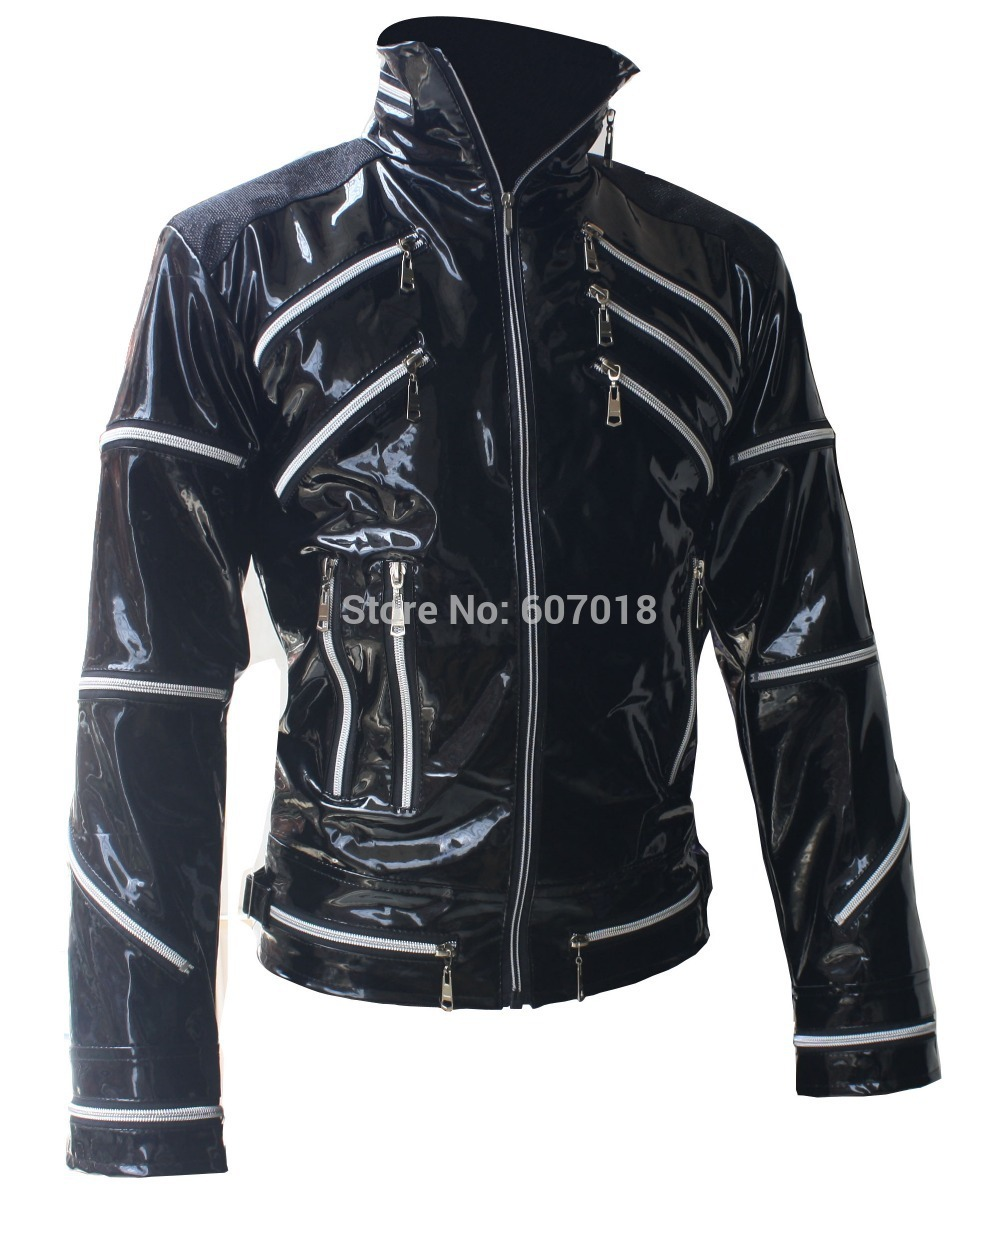 Rare PUNK Rock Motorcycle Classic MJ MICHAEL JACKSON Costume Beat it Black Zipper Jacket For Fans Imitator Best Gift